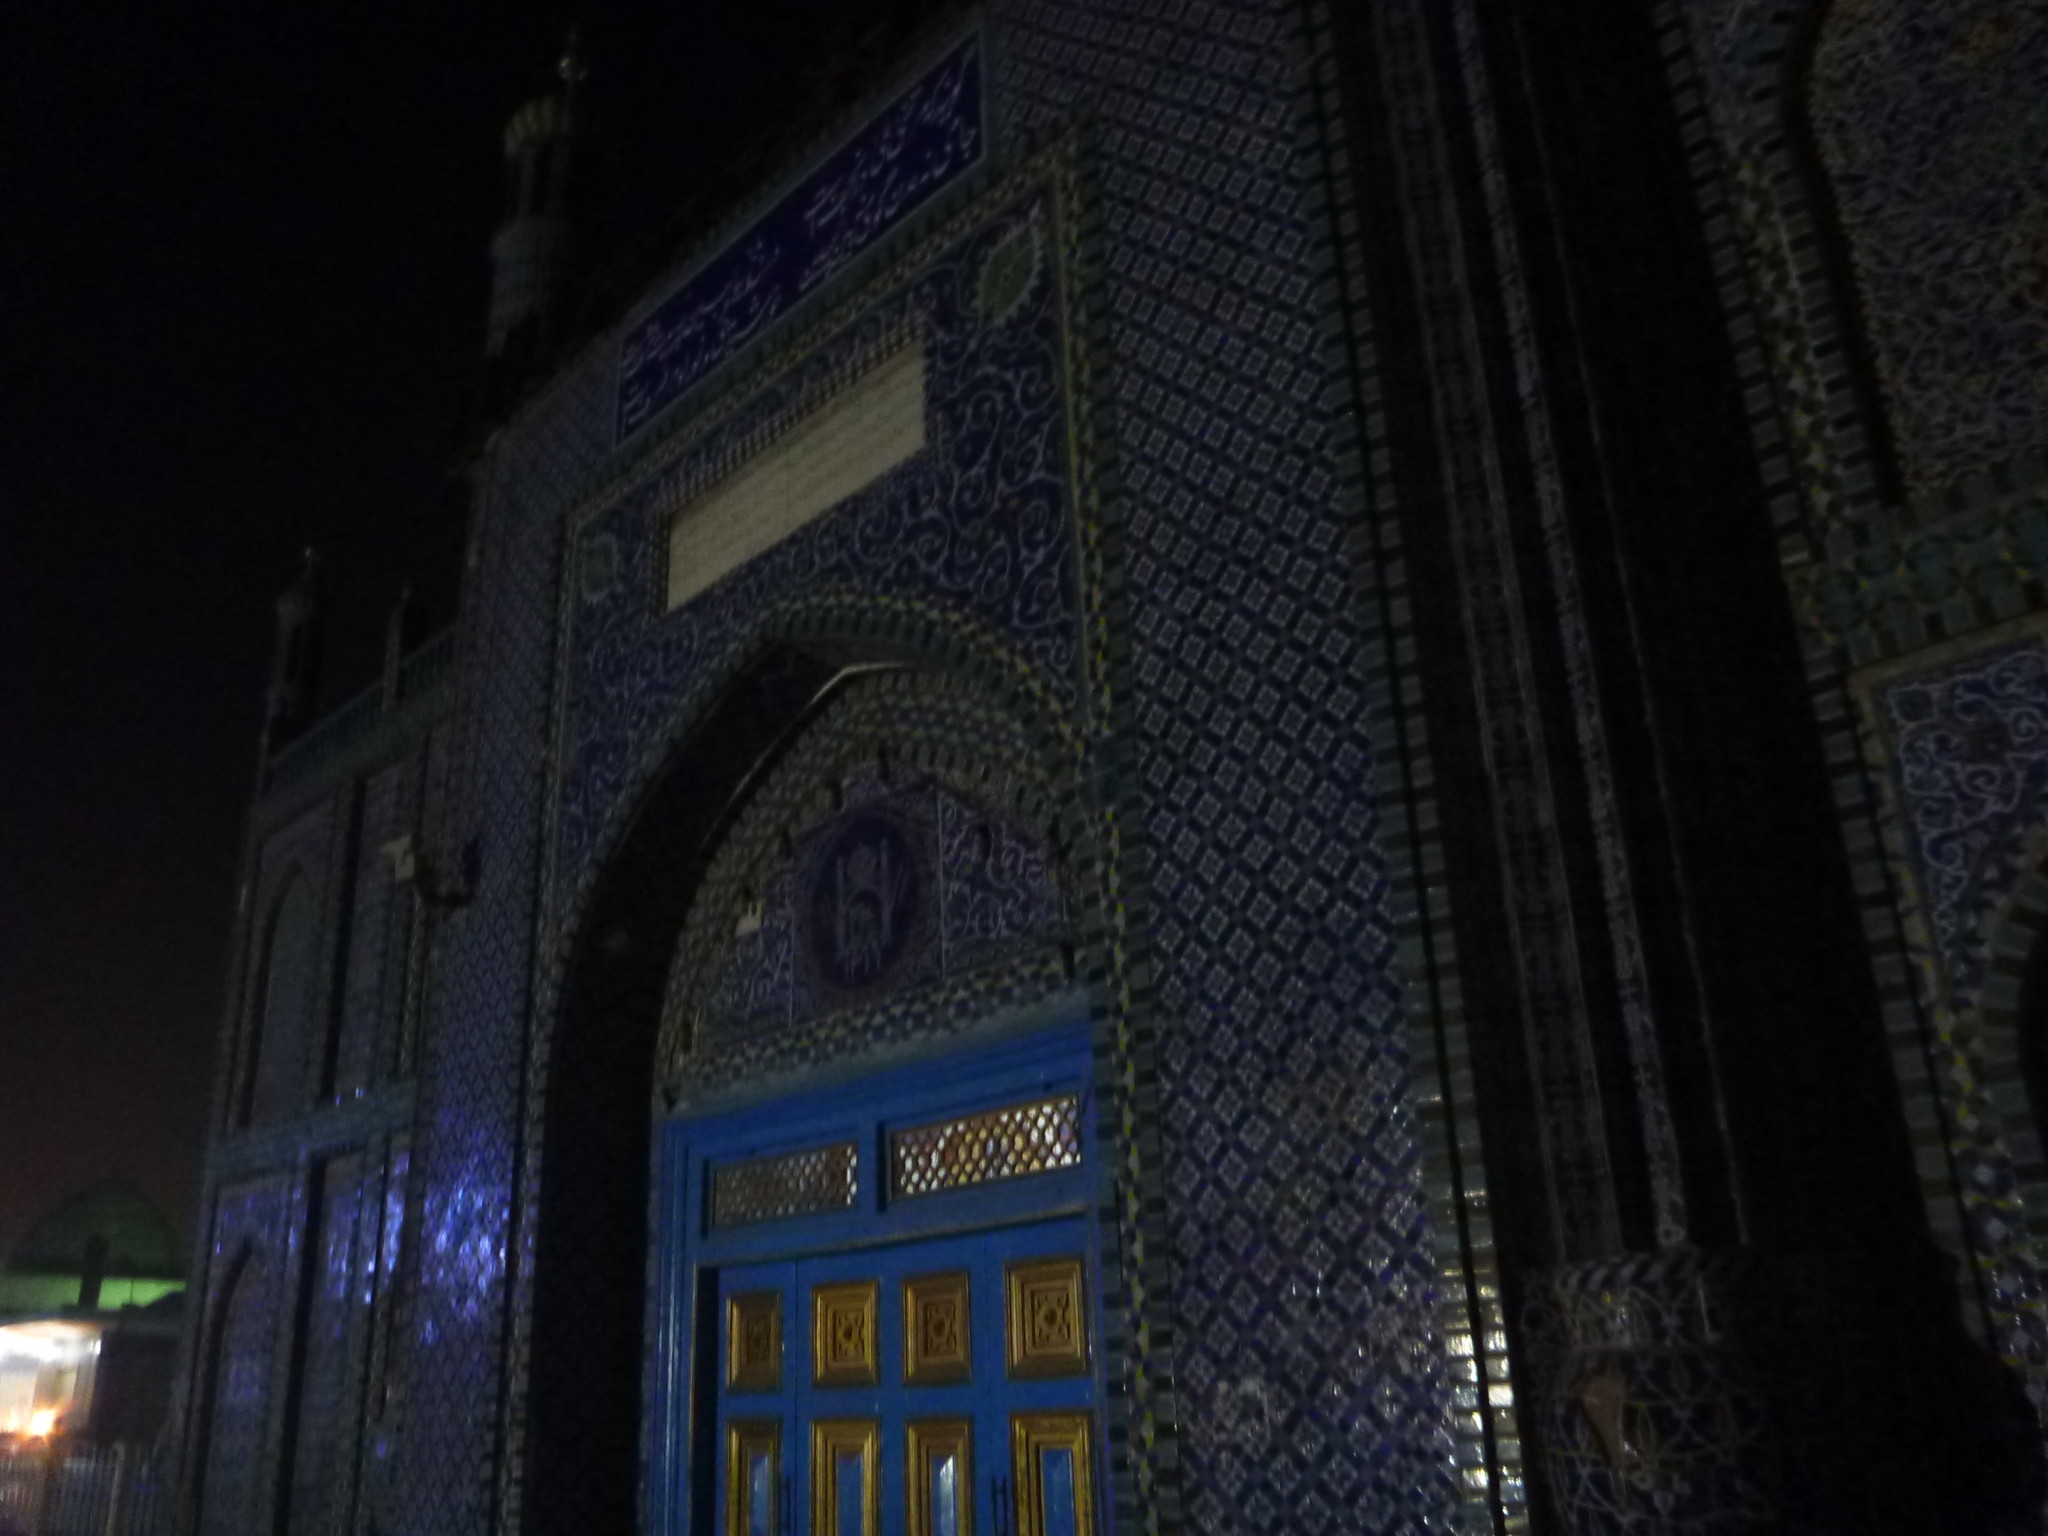 Backpacking in Afghanistan: Visiting Hazrat Ali's Tomb and Blue